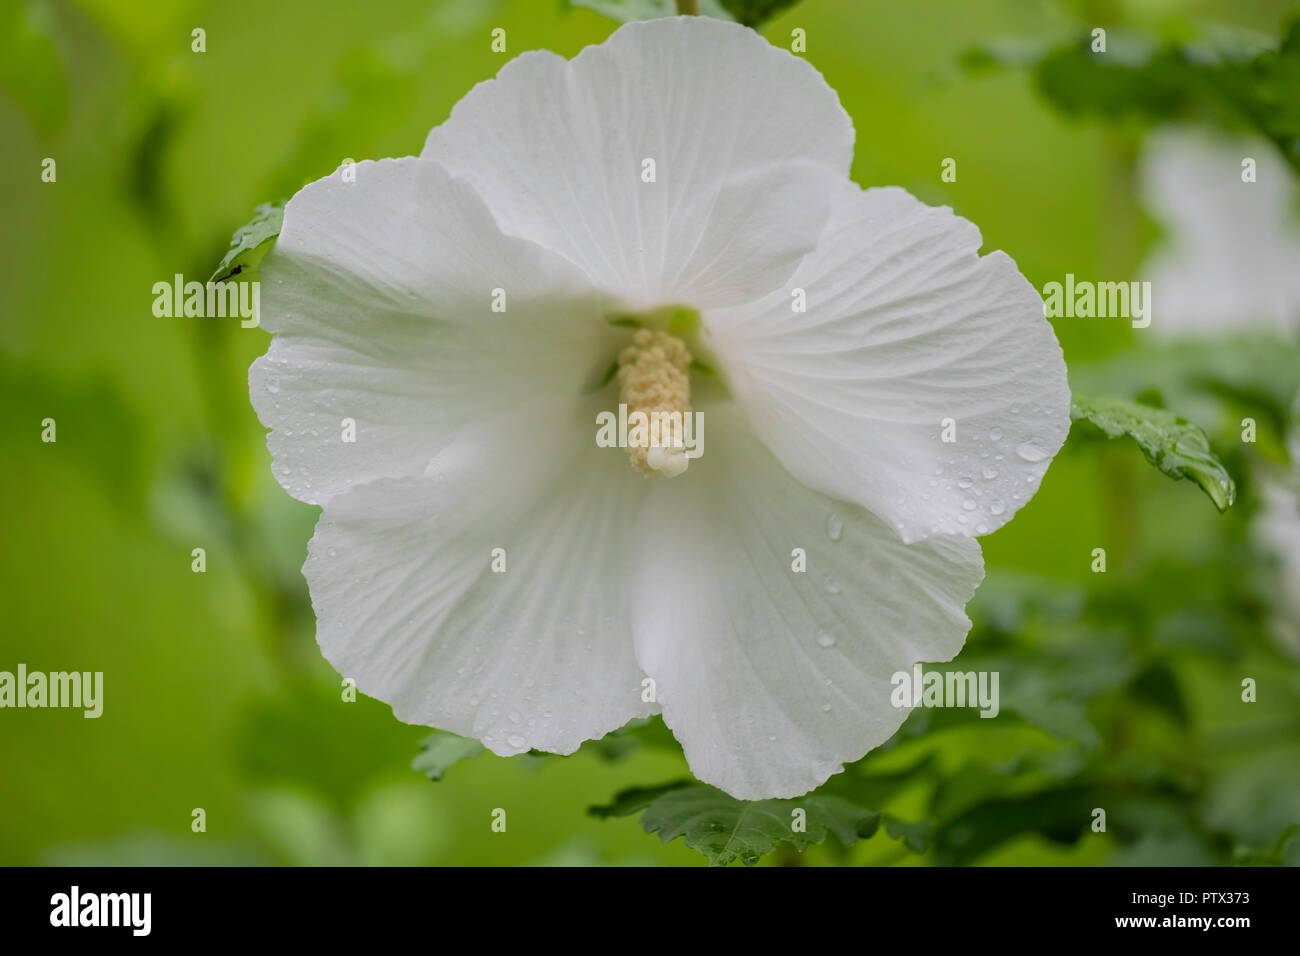 A Pure White Flower On A Rose Of Sharon Shrub Althea Hibiscus